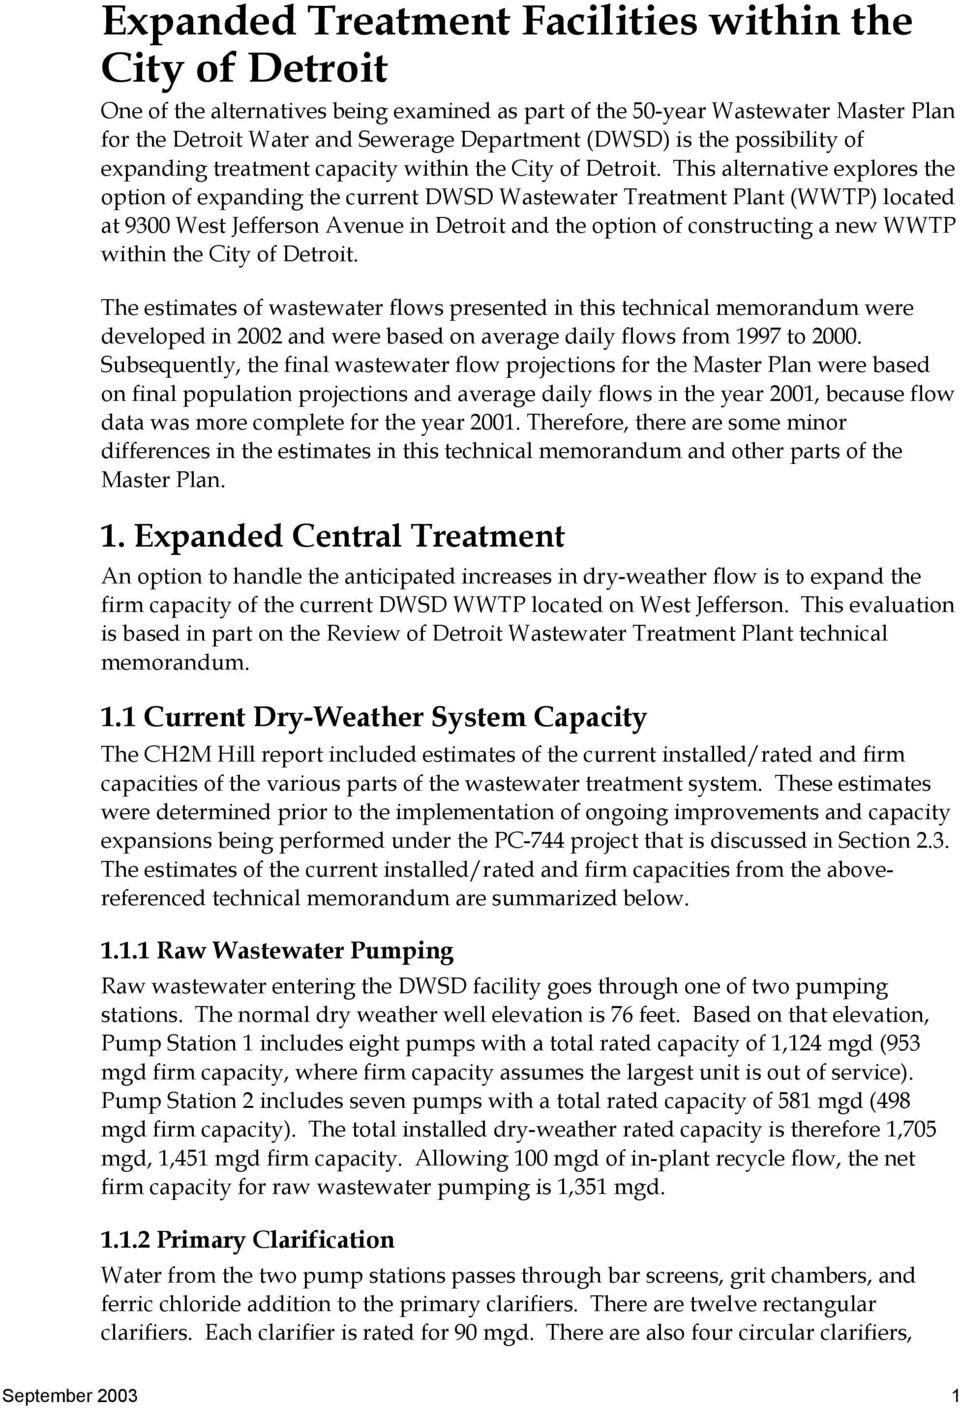 Expanded treatment facilities within the city of detroit pdf this alternative explores the option of expanding the current dwsd wastewater treatment plant wwtp publicscrutiny Image collections